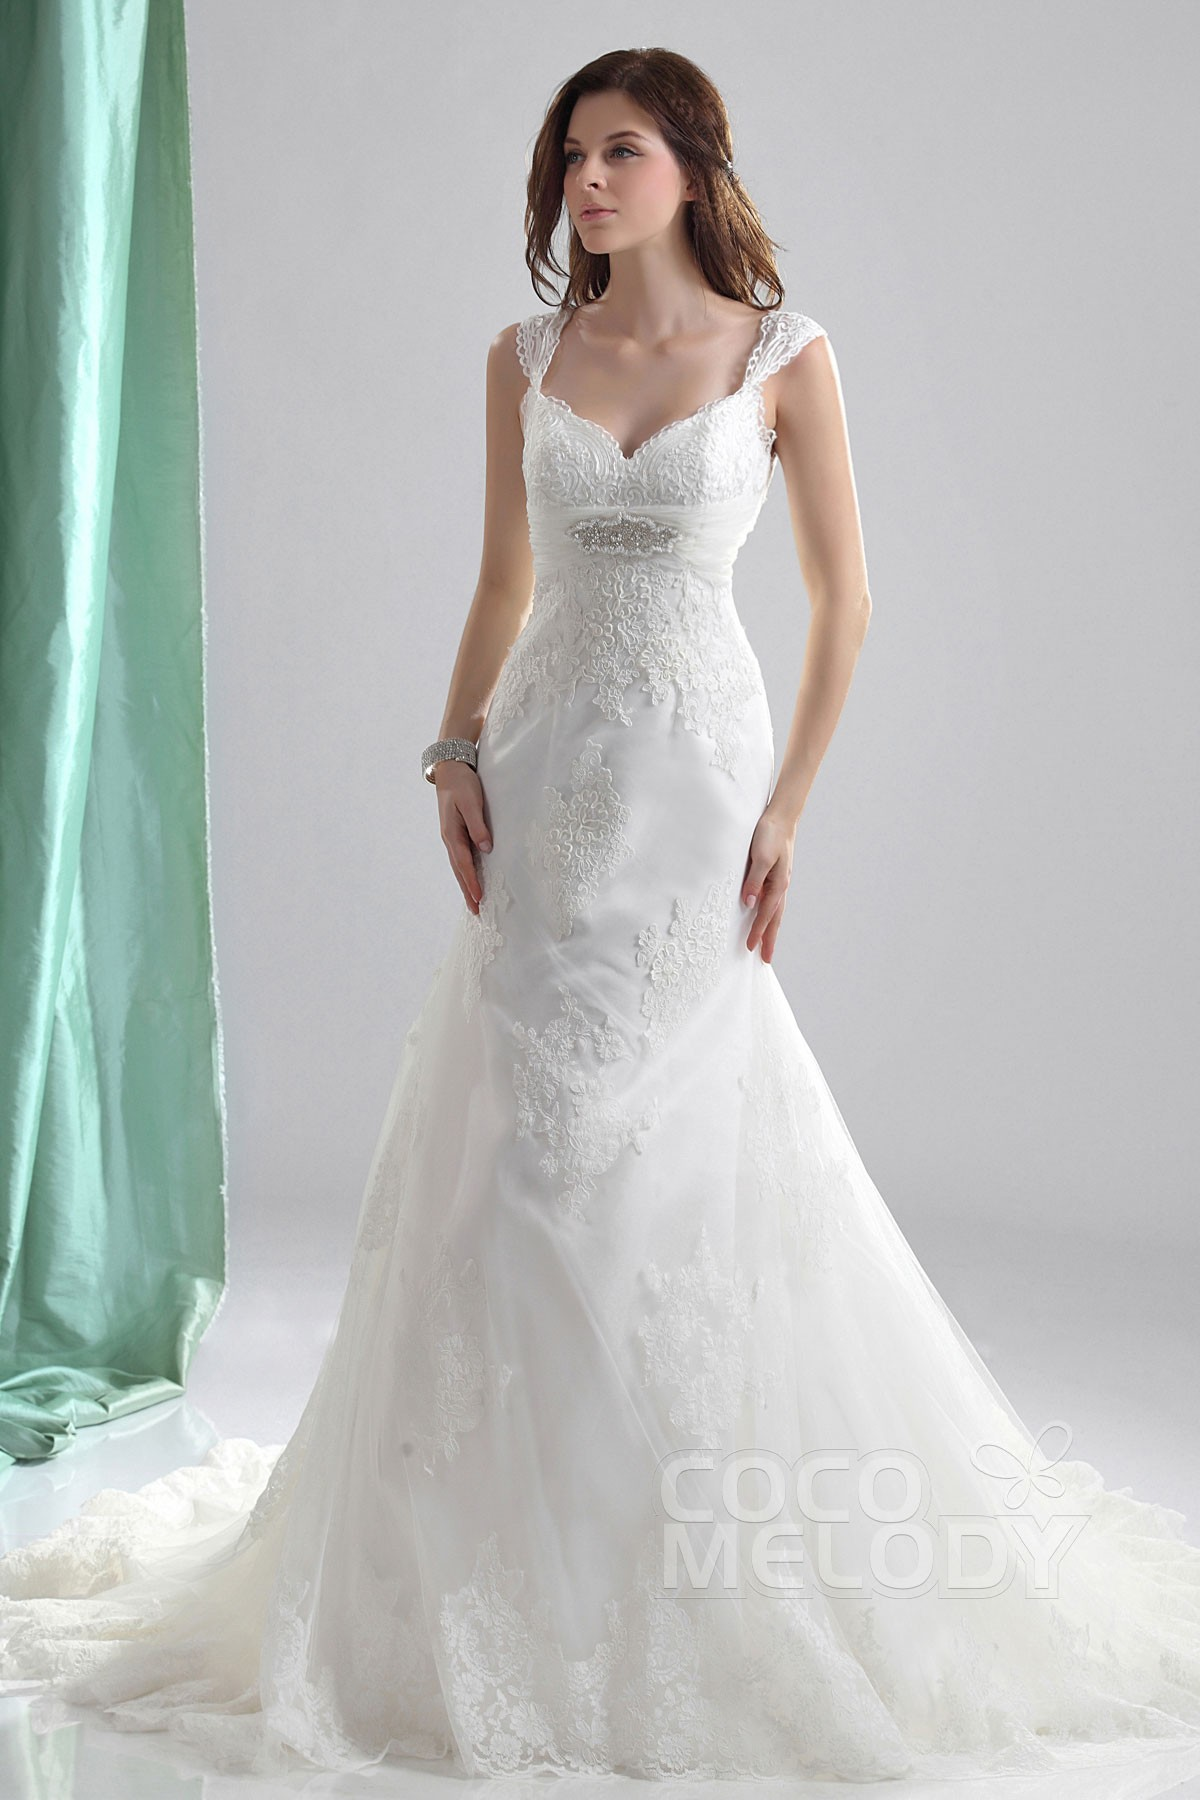 Modern Trumpet Mermaid Straps Court Train Tulle Fit And Flare Wedding Dress Cwlt130e7